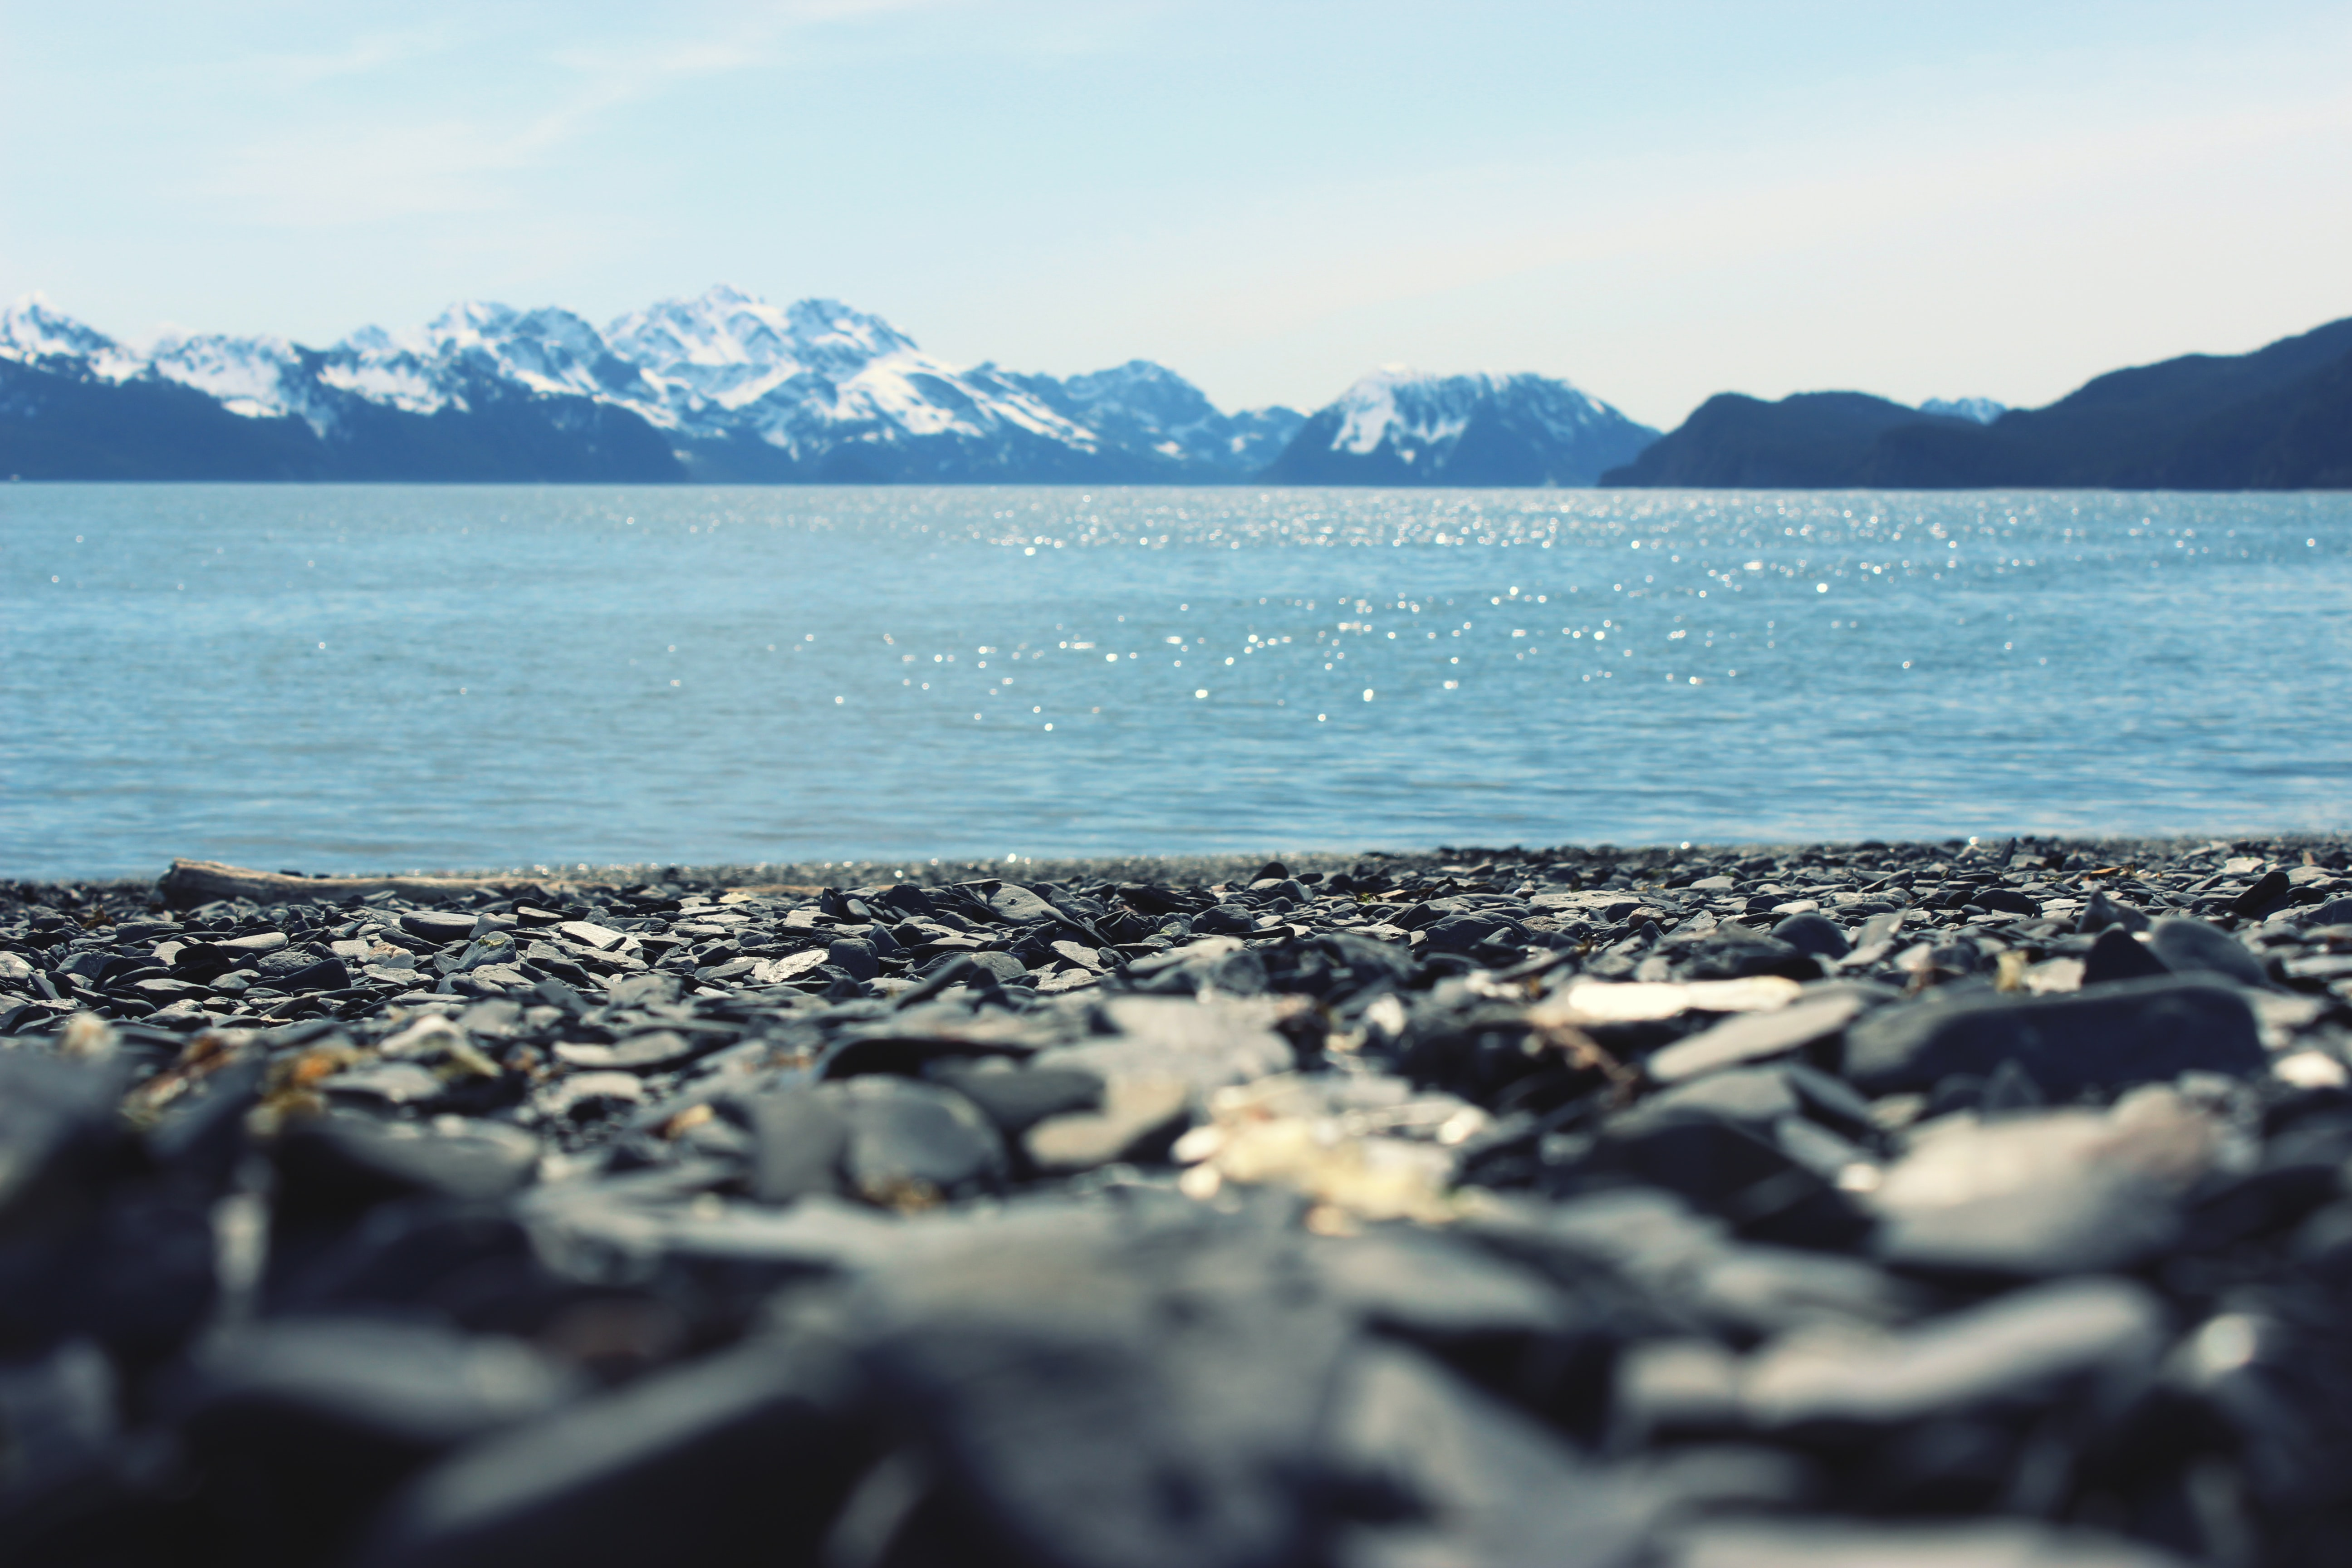 Snowy mountains on the horizon viewed from the rocky beach